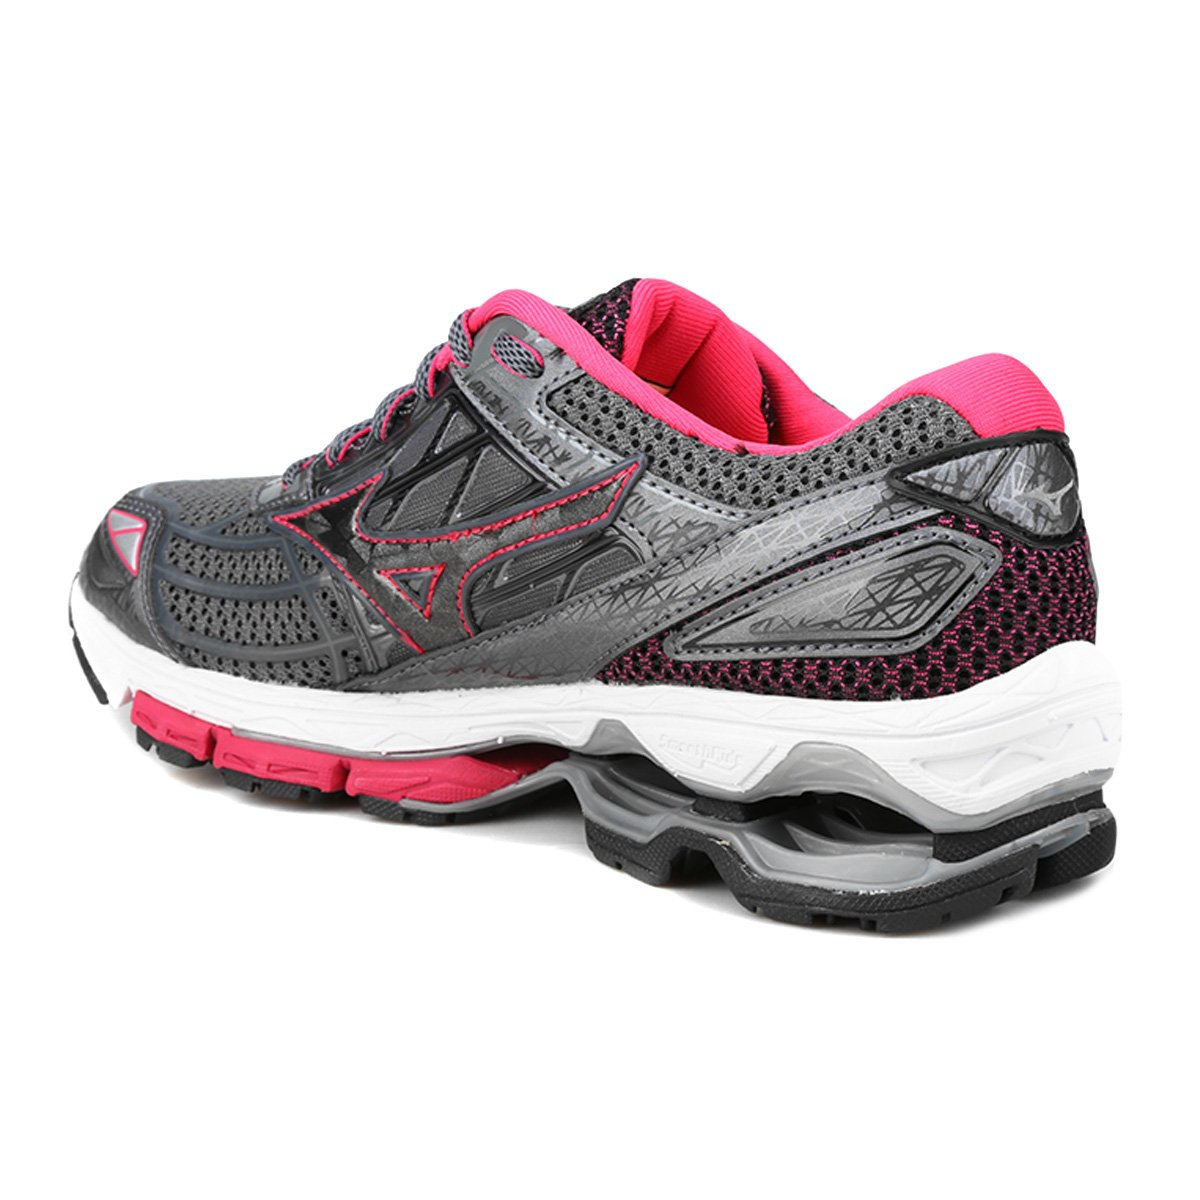 Grafite Mizuno Tênis Wave Creation Feminino 19 Feminino e 19 Wave Creation Grafite Rosa Tênis Mizuno pwAq7tgFW